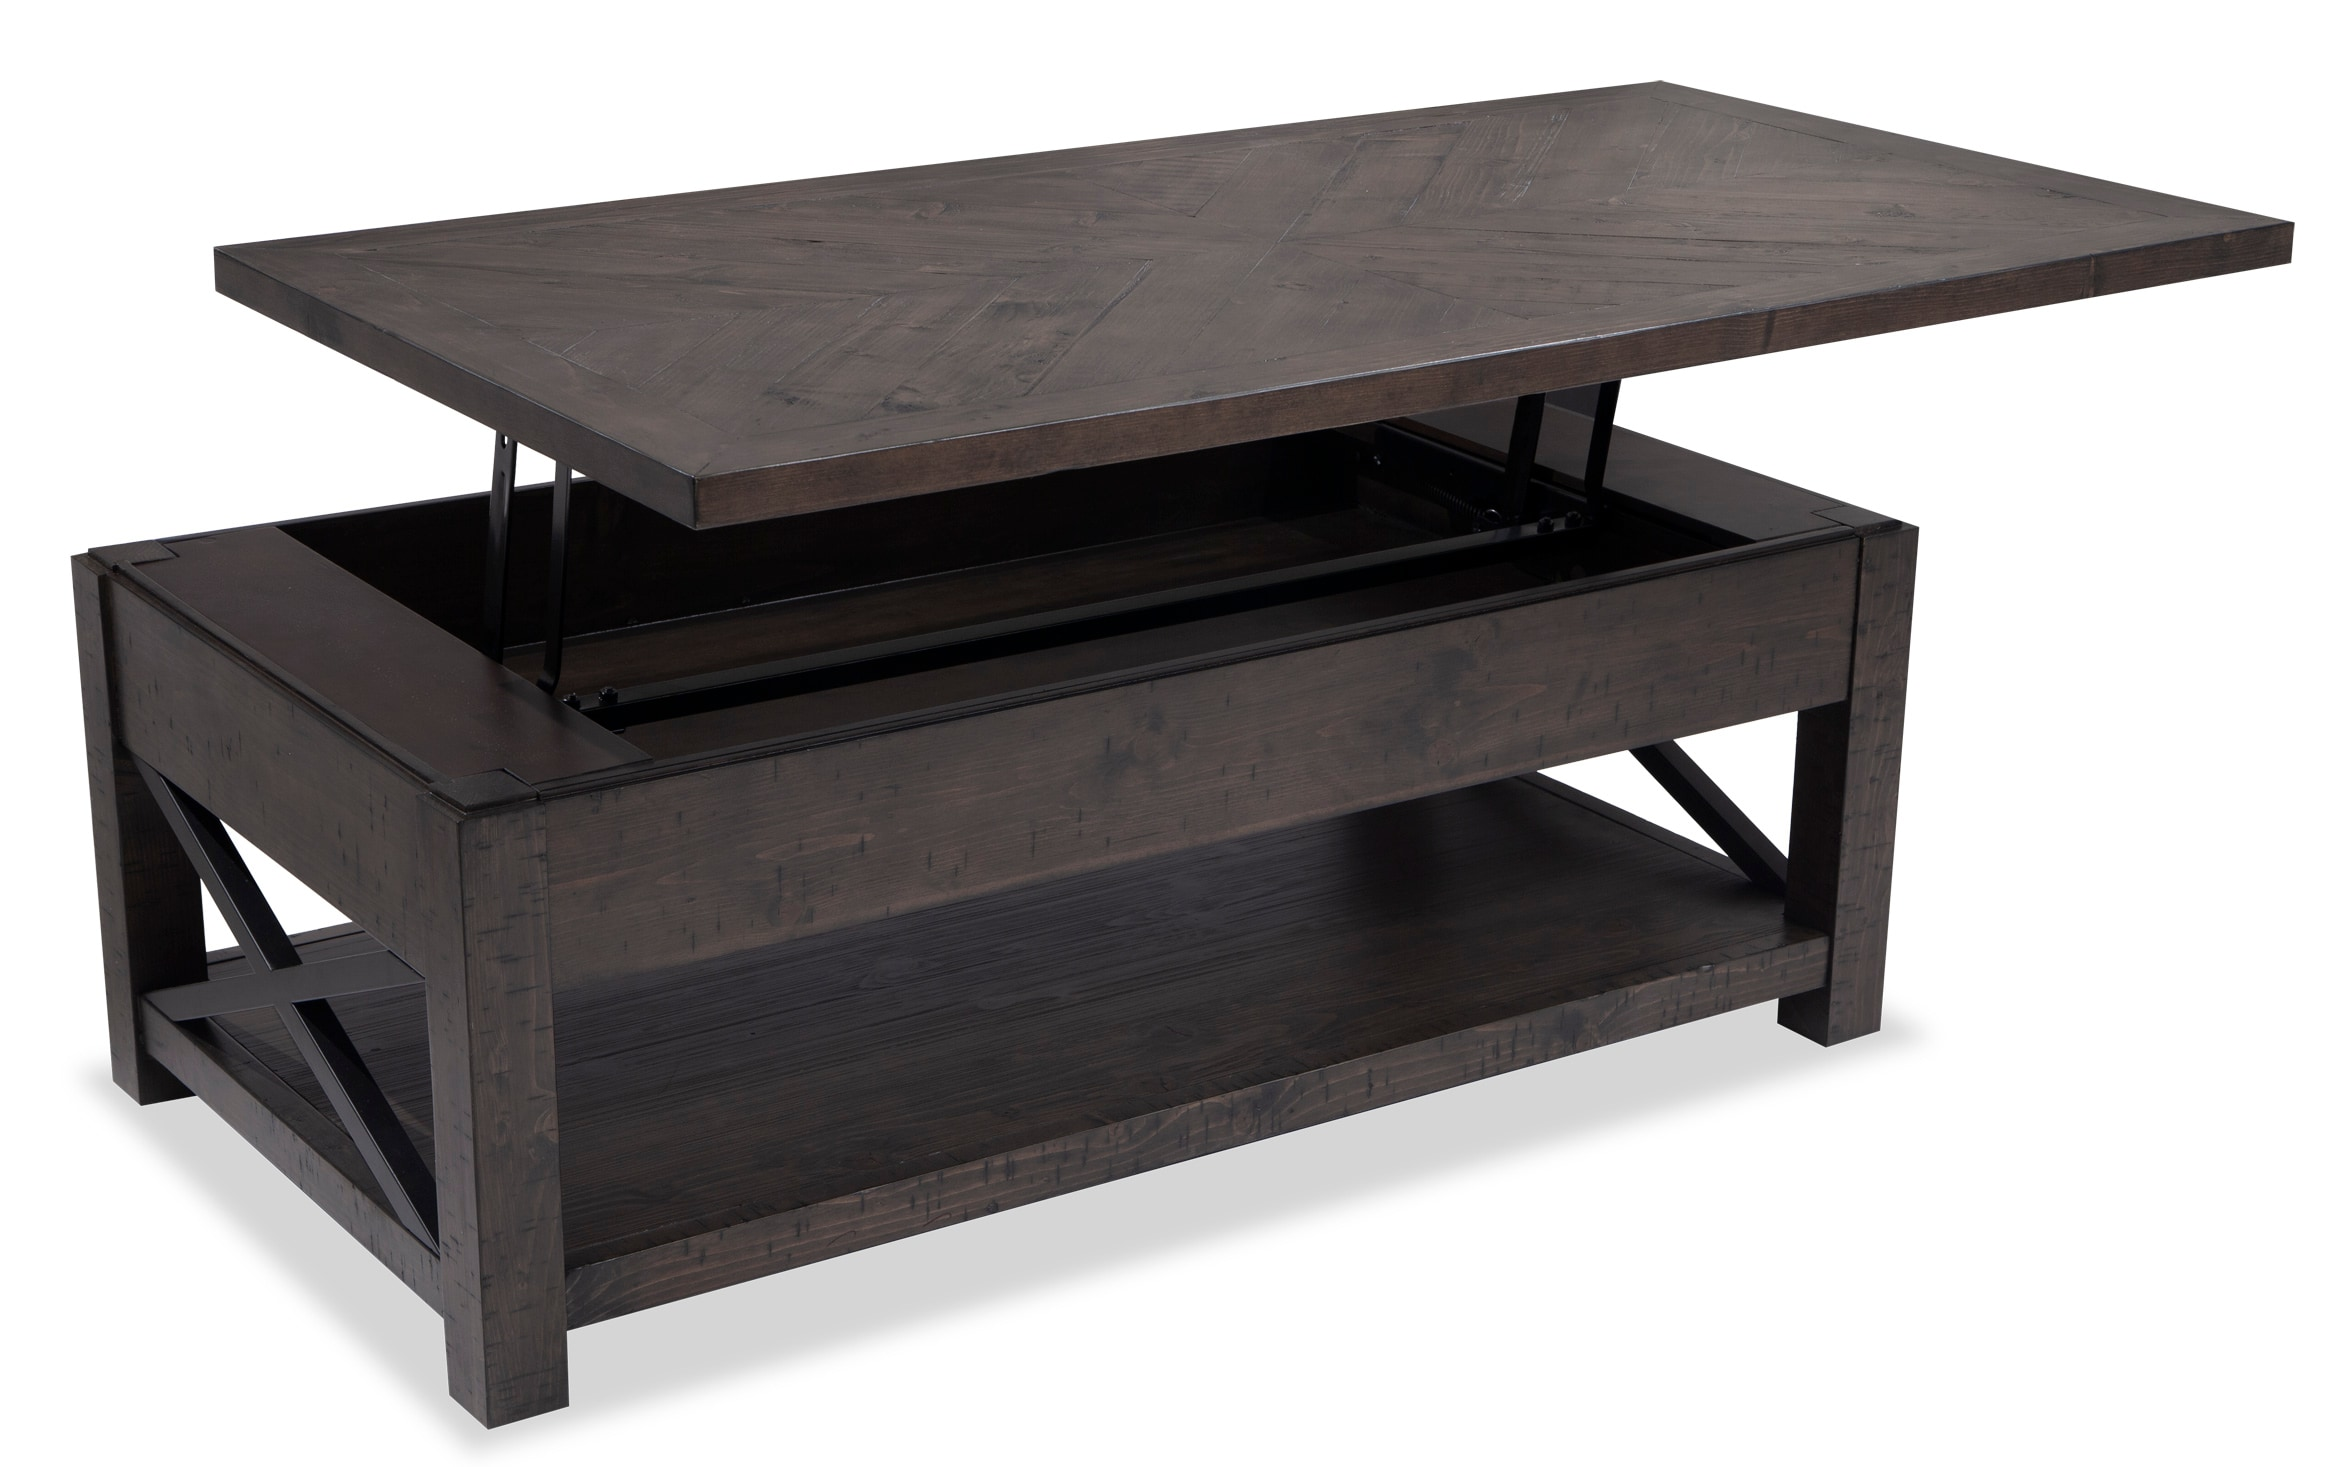 Cadence Hydraulic Lift Top Table With Glass Base Youtube [ 720 x 1280 Pixel ]